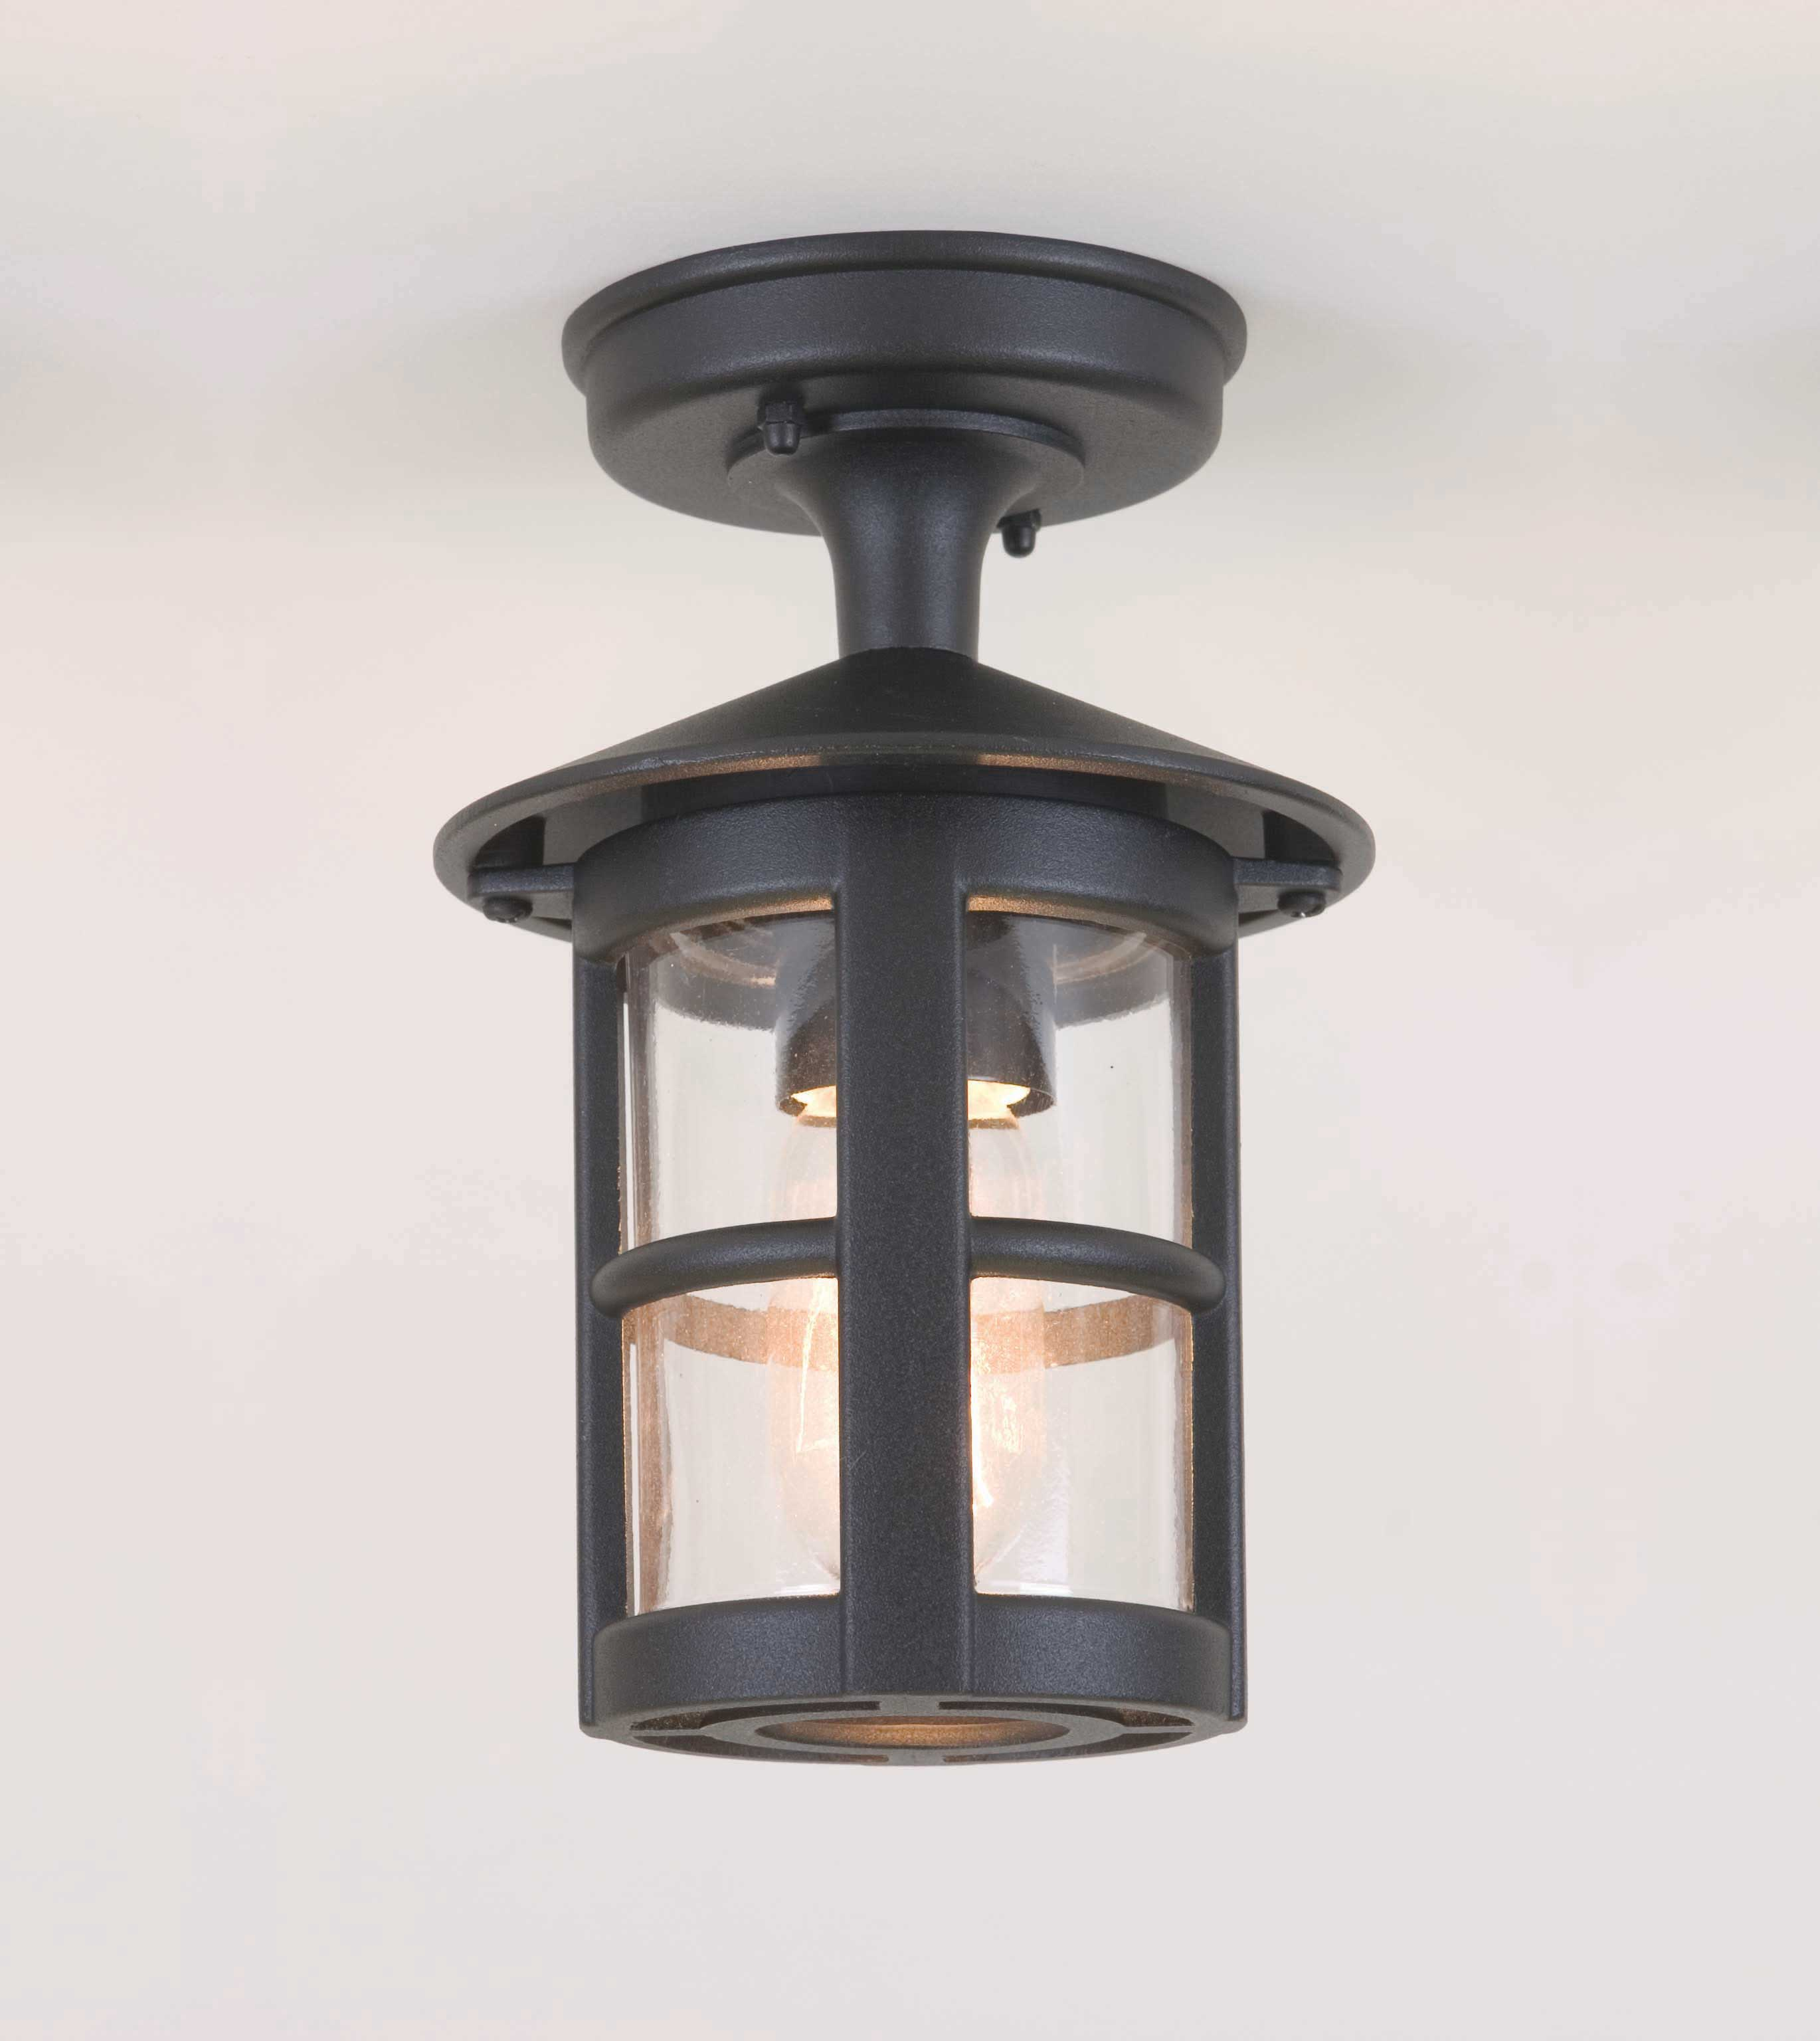 Outdoor ceiling porch lights For A Stylish And Healthy Lifestyle